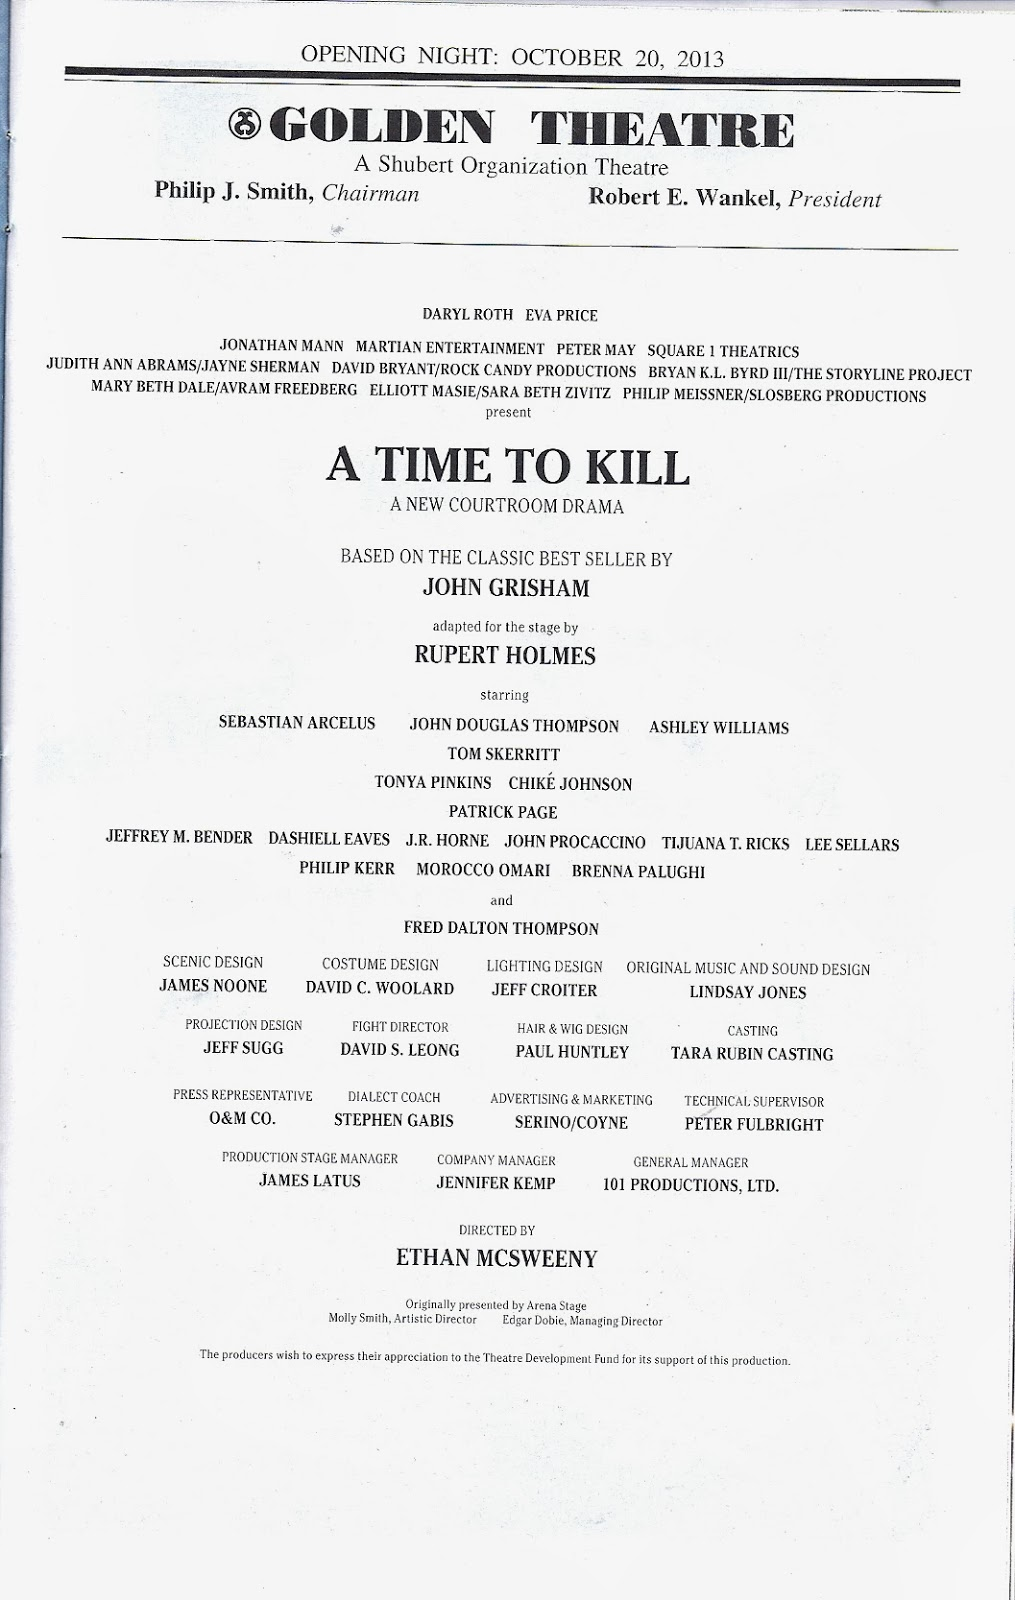 review of a time to kill A time to kill by john grisham  /home/leversuch/webapps/bookreviews/wp- content/plugins/wp-product-review/includes/legacyphp on line 18.